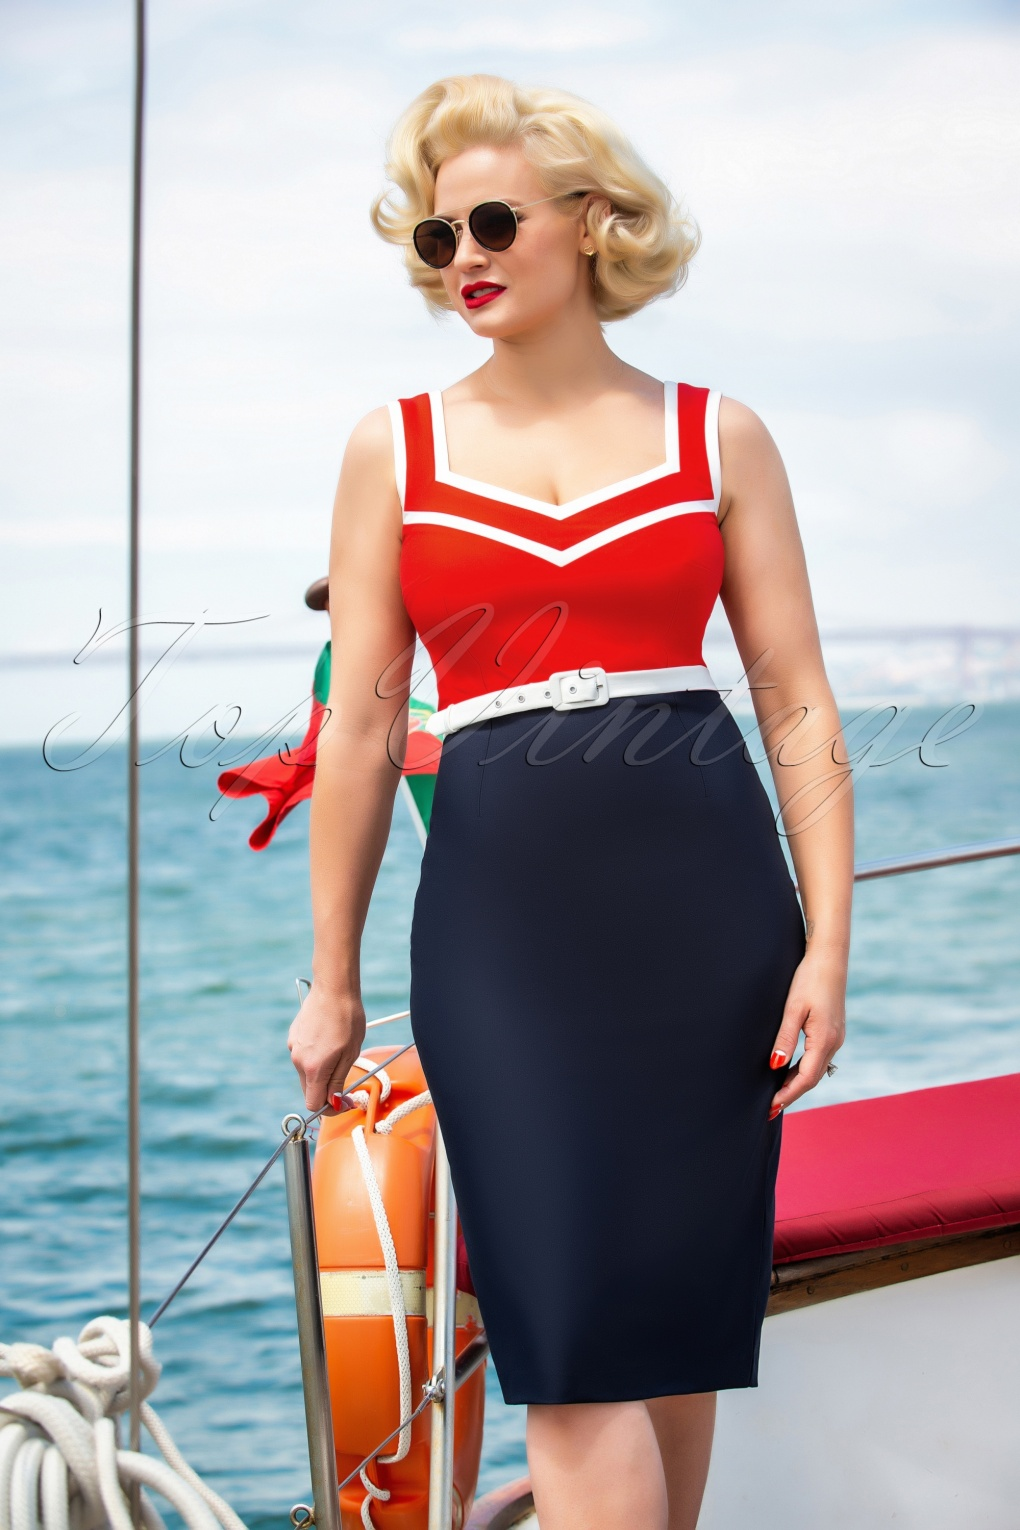 500 Vintage Style Dresses for Sale | Vintage Inspired Dresses 50s Barbara Pencil Dress in Red and Navy £100.85 AT vintagedancer.com